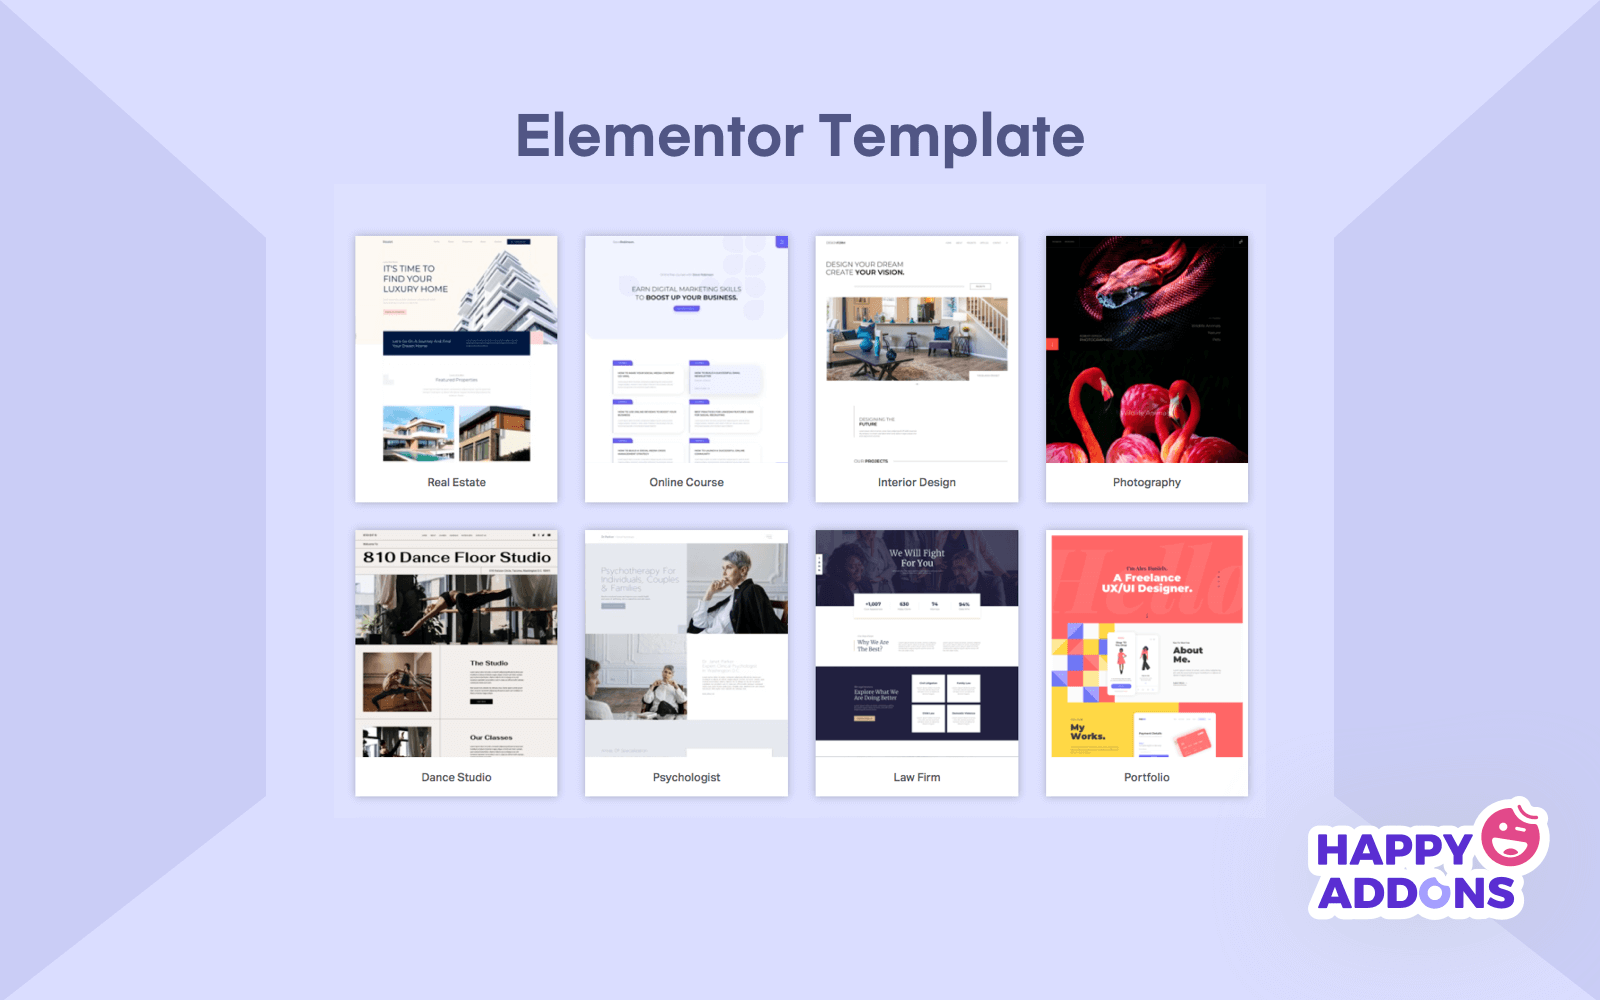 How to Use Free Elementor Website Templates